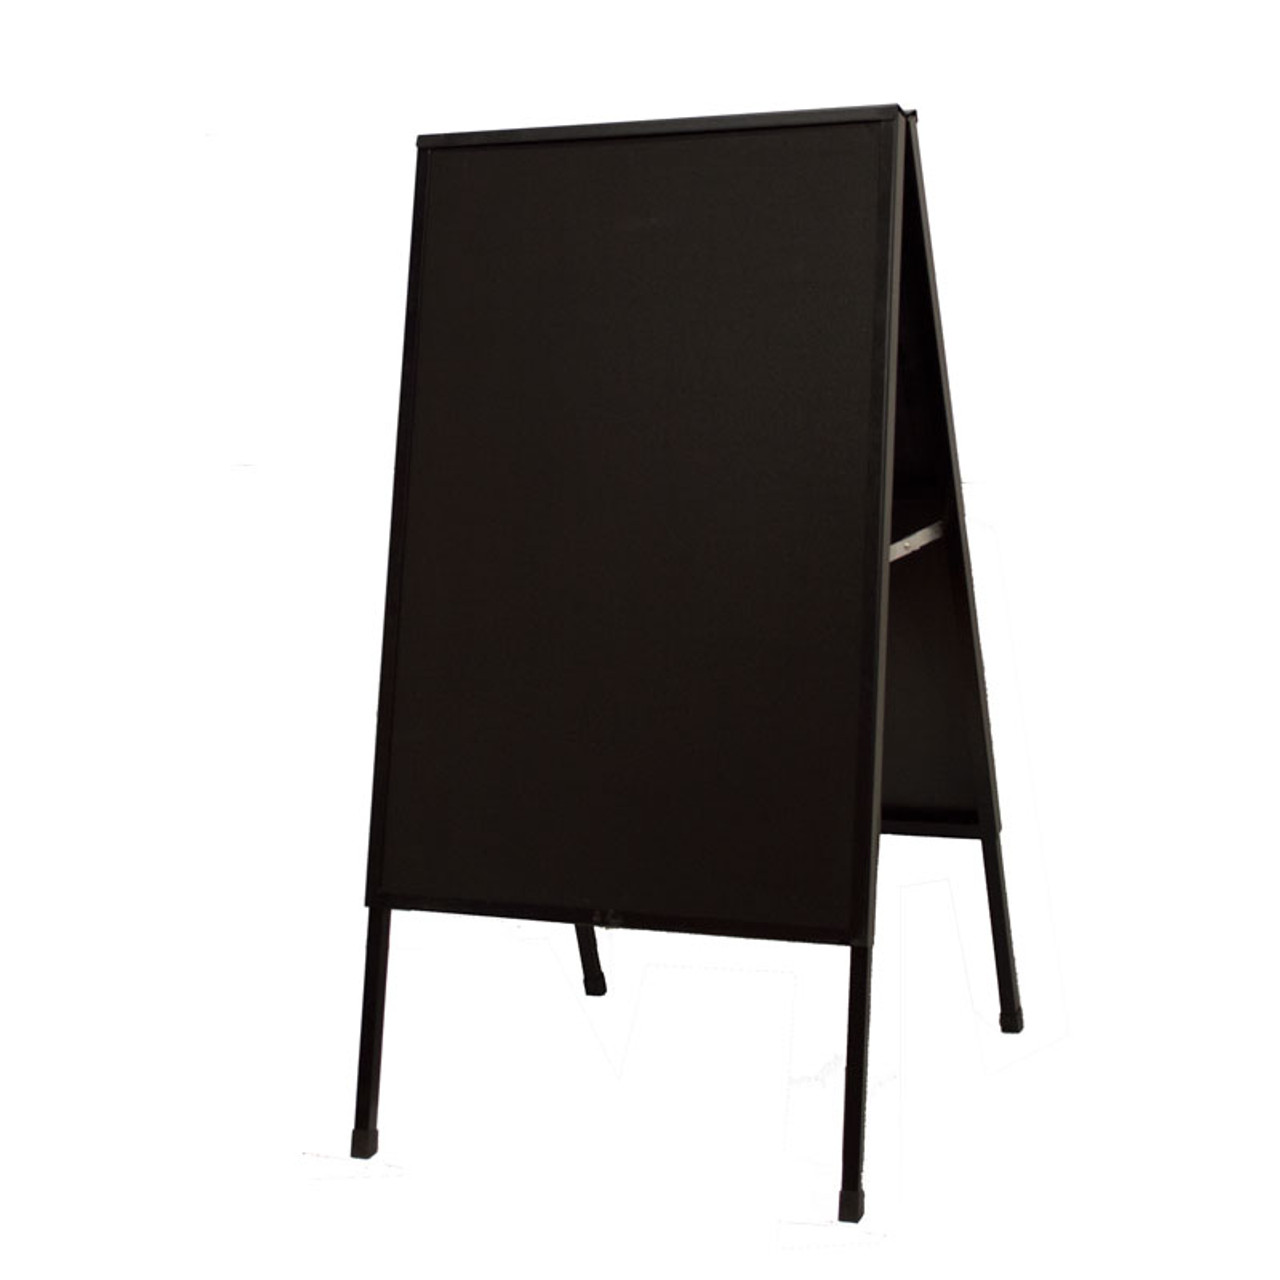 "A-Frame - Sidewalk Sign Holder - 24""w x 36""h"